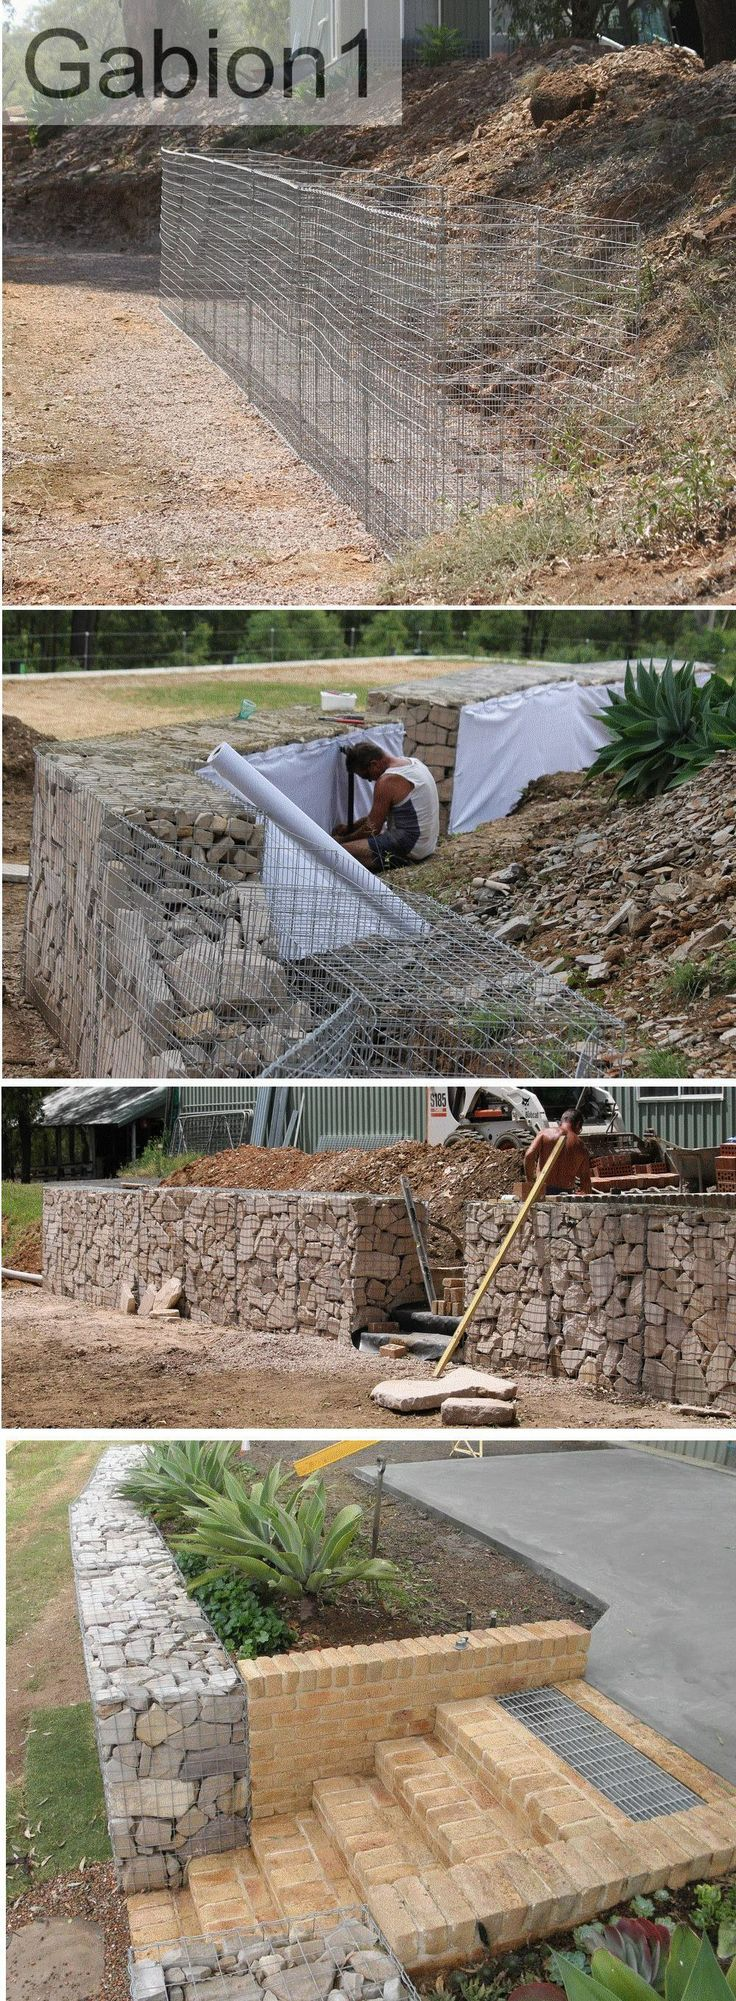 Gabion Wall With Brick Steps, Http://wwwgabion1comau